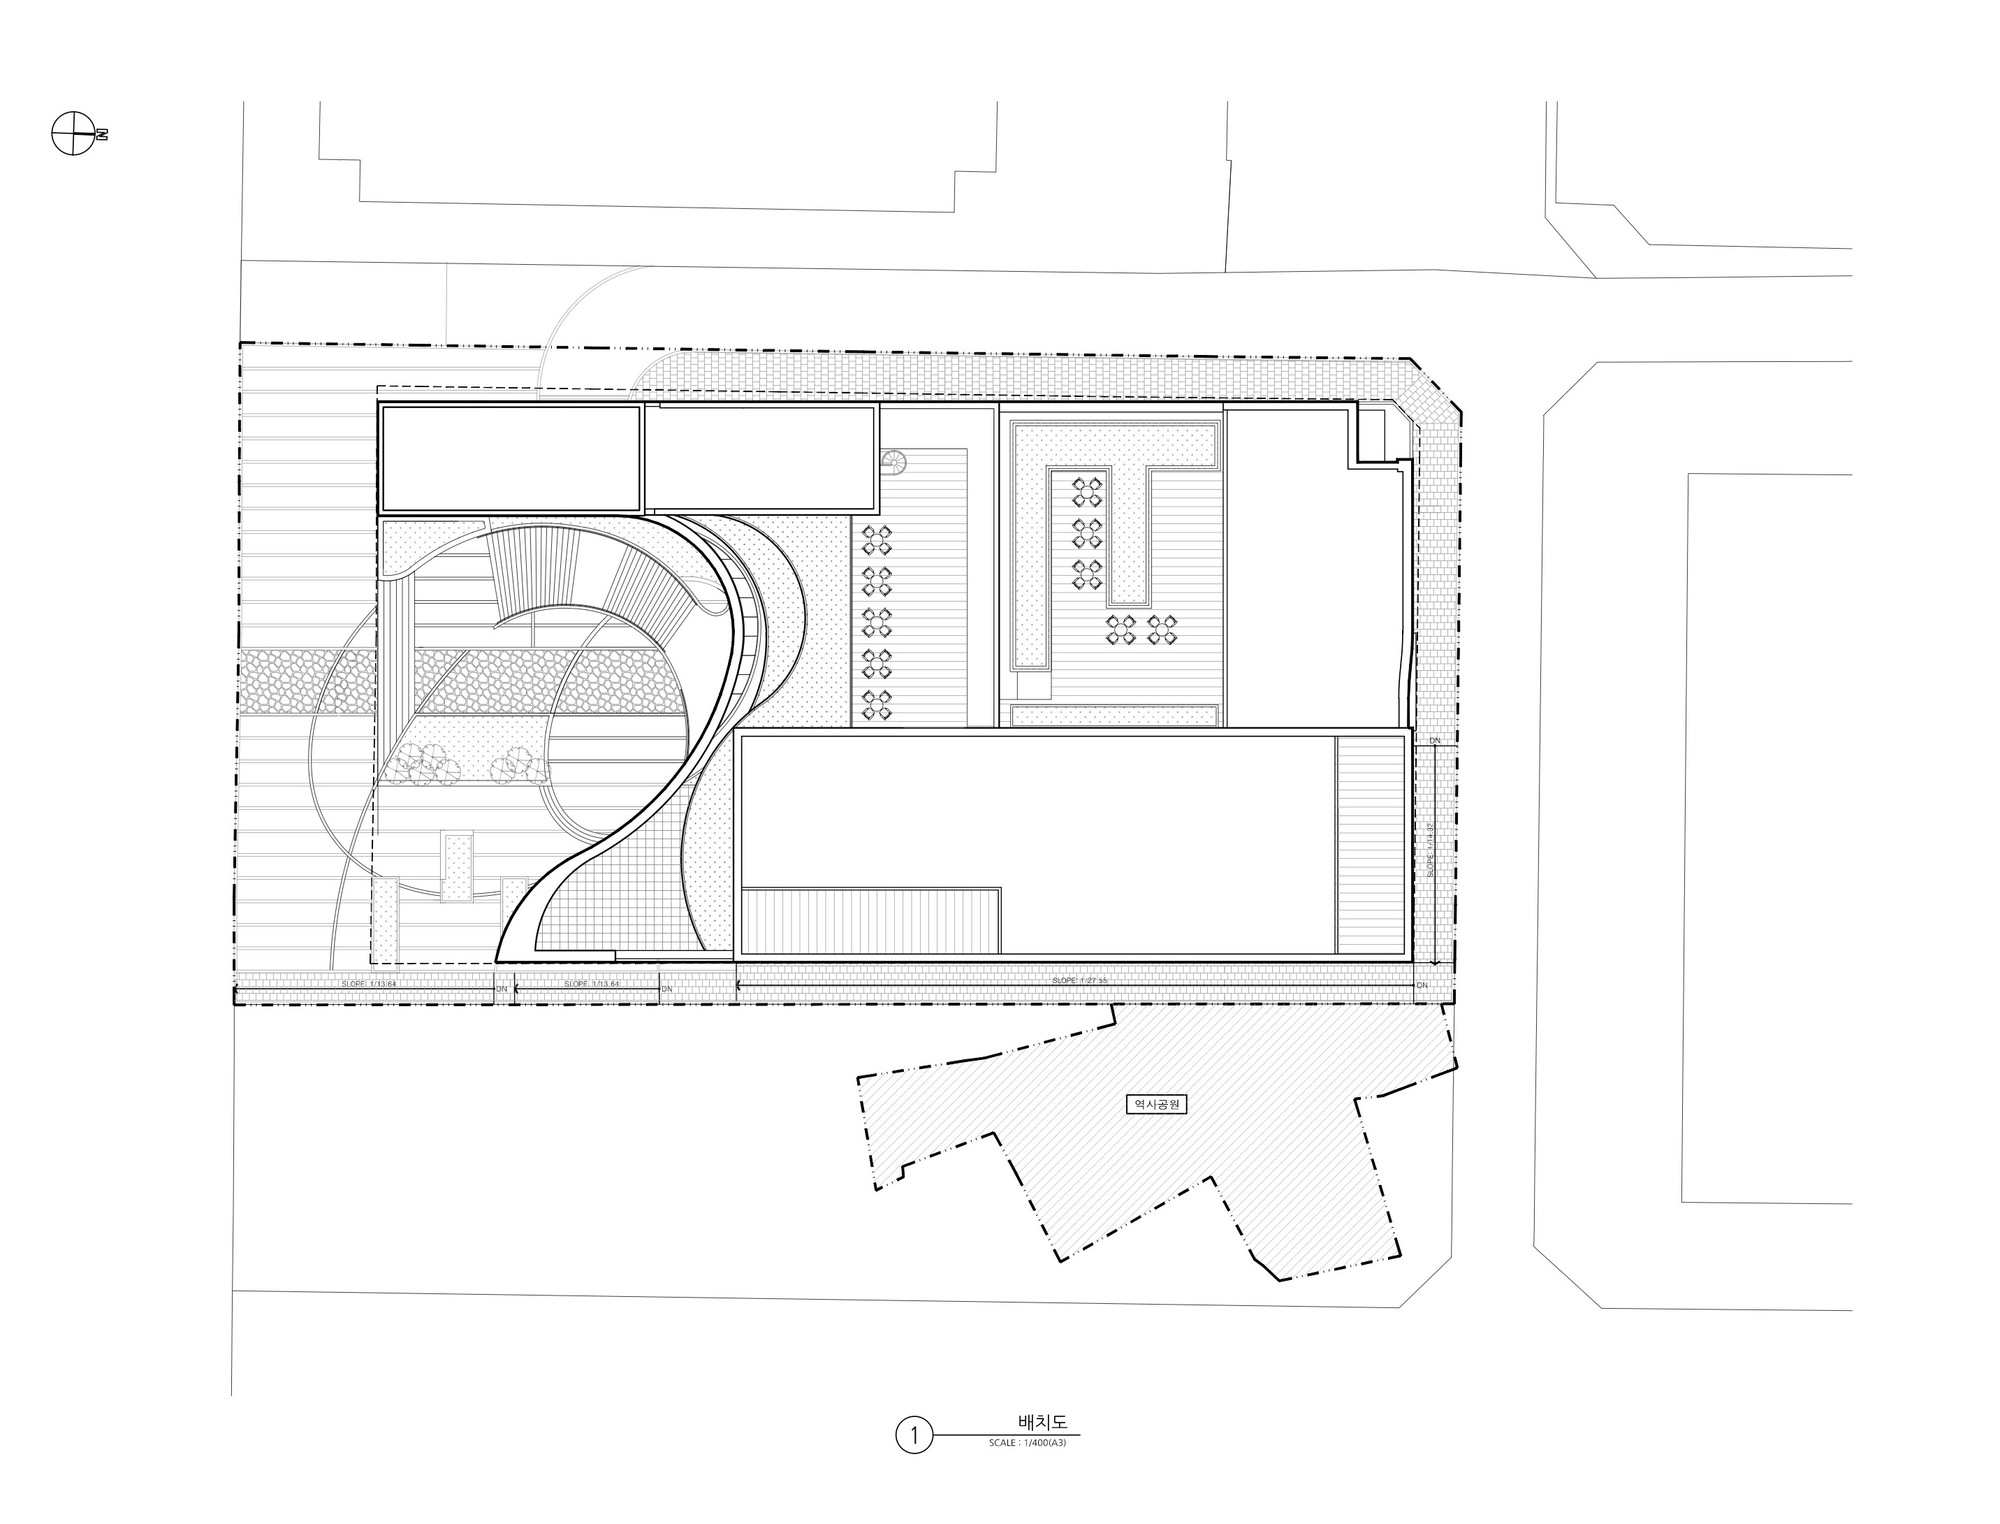 18_Drawing_Site_Plan.jpg